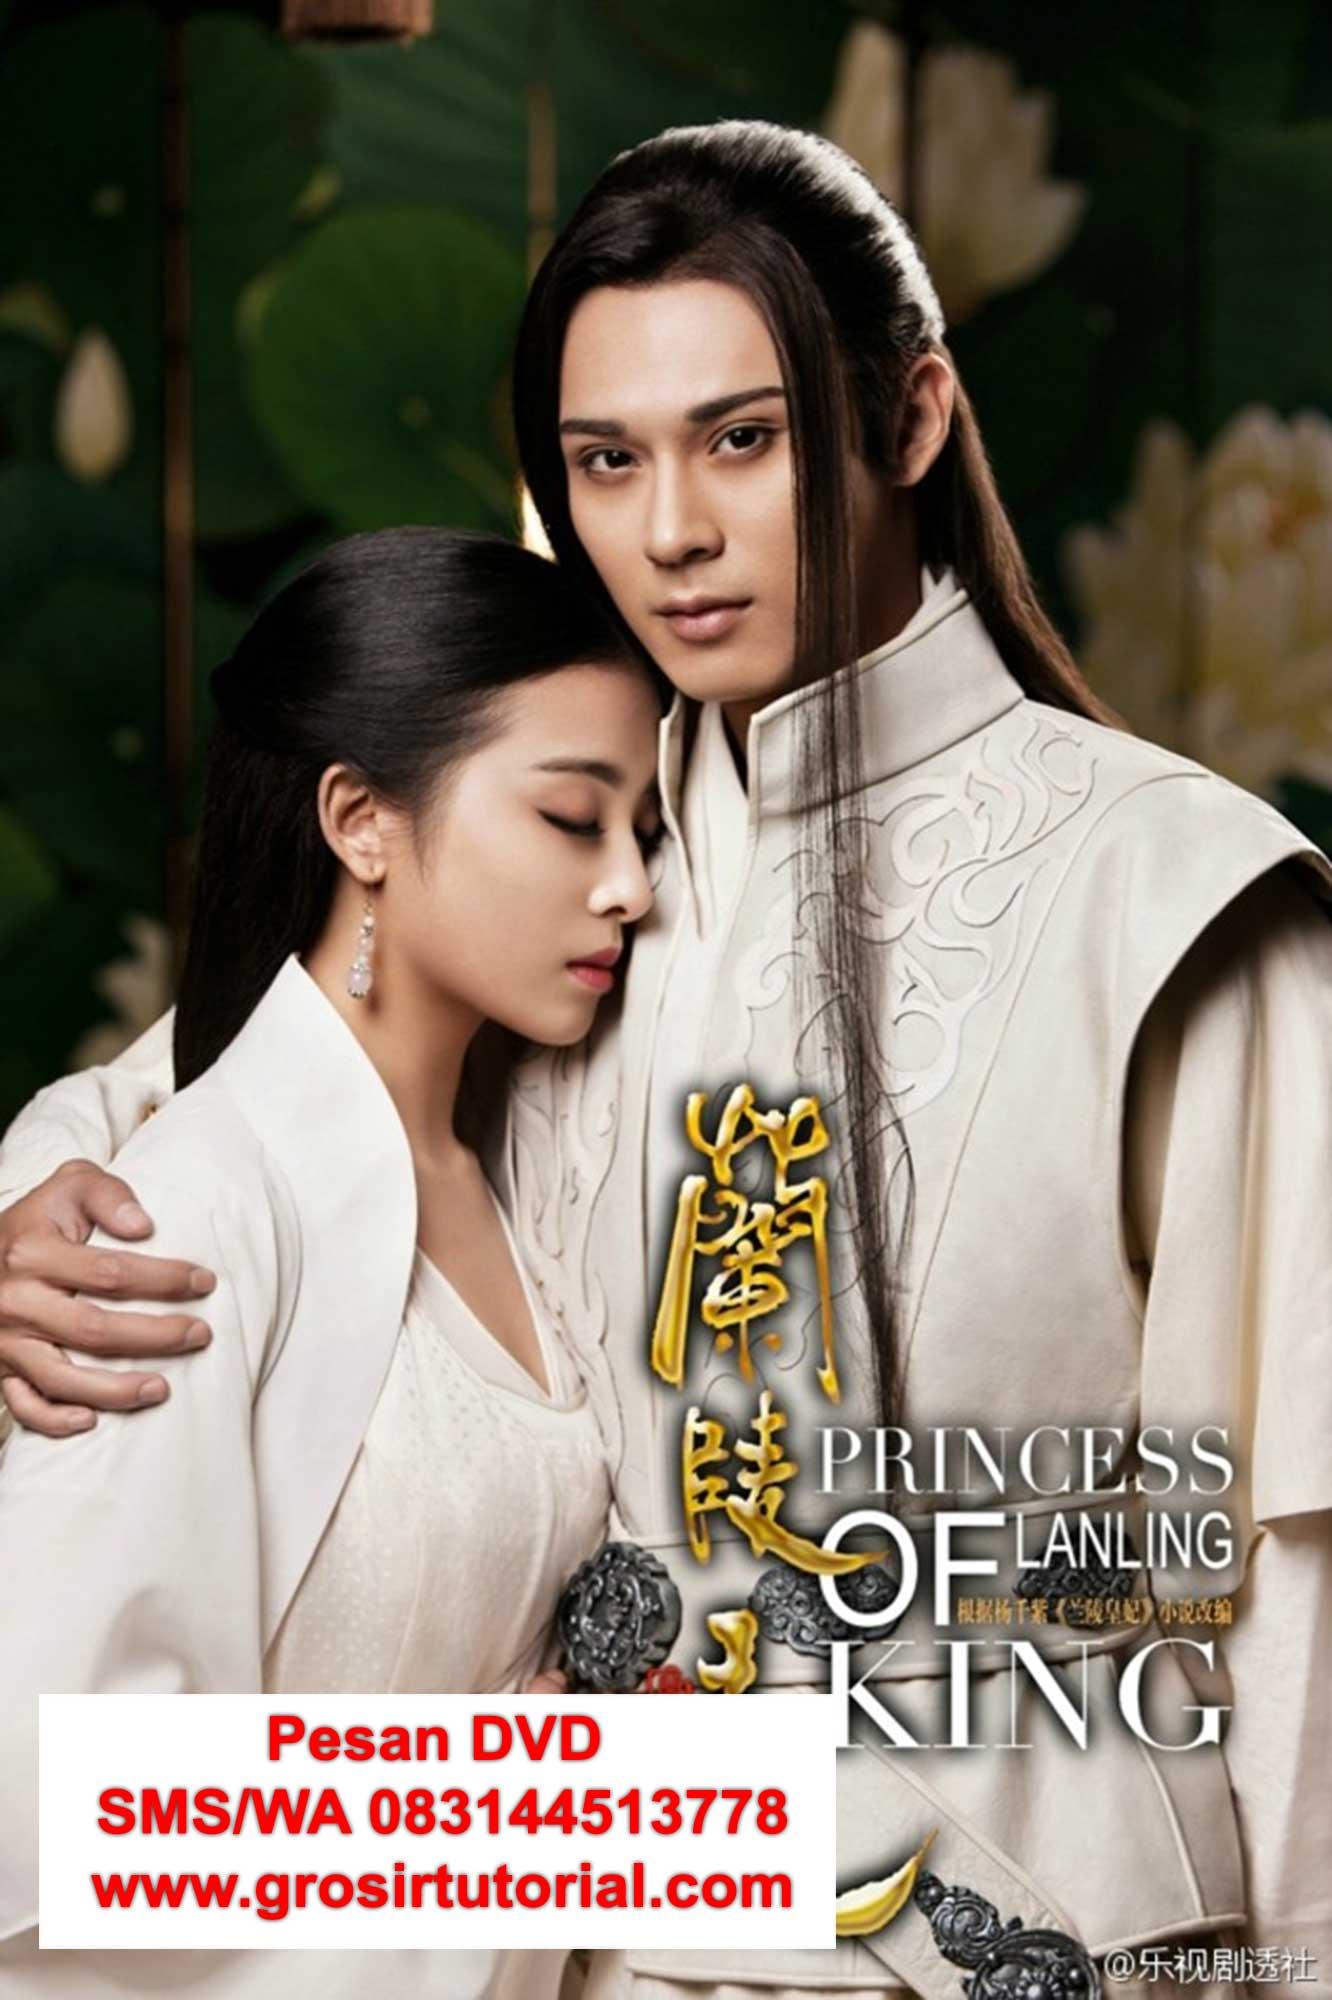 beli-DVD-mandarin-Princes-of-Lanking